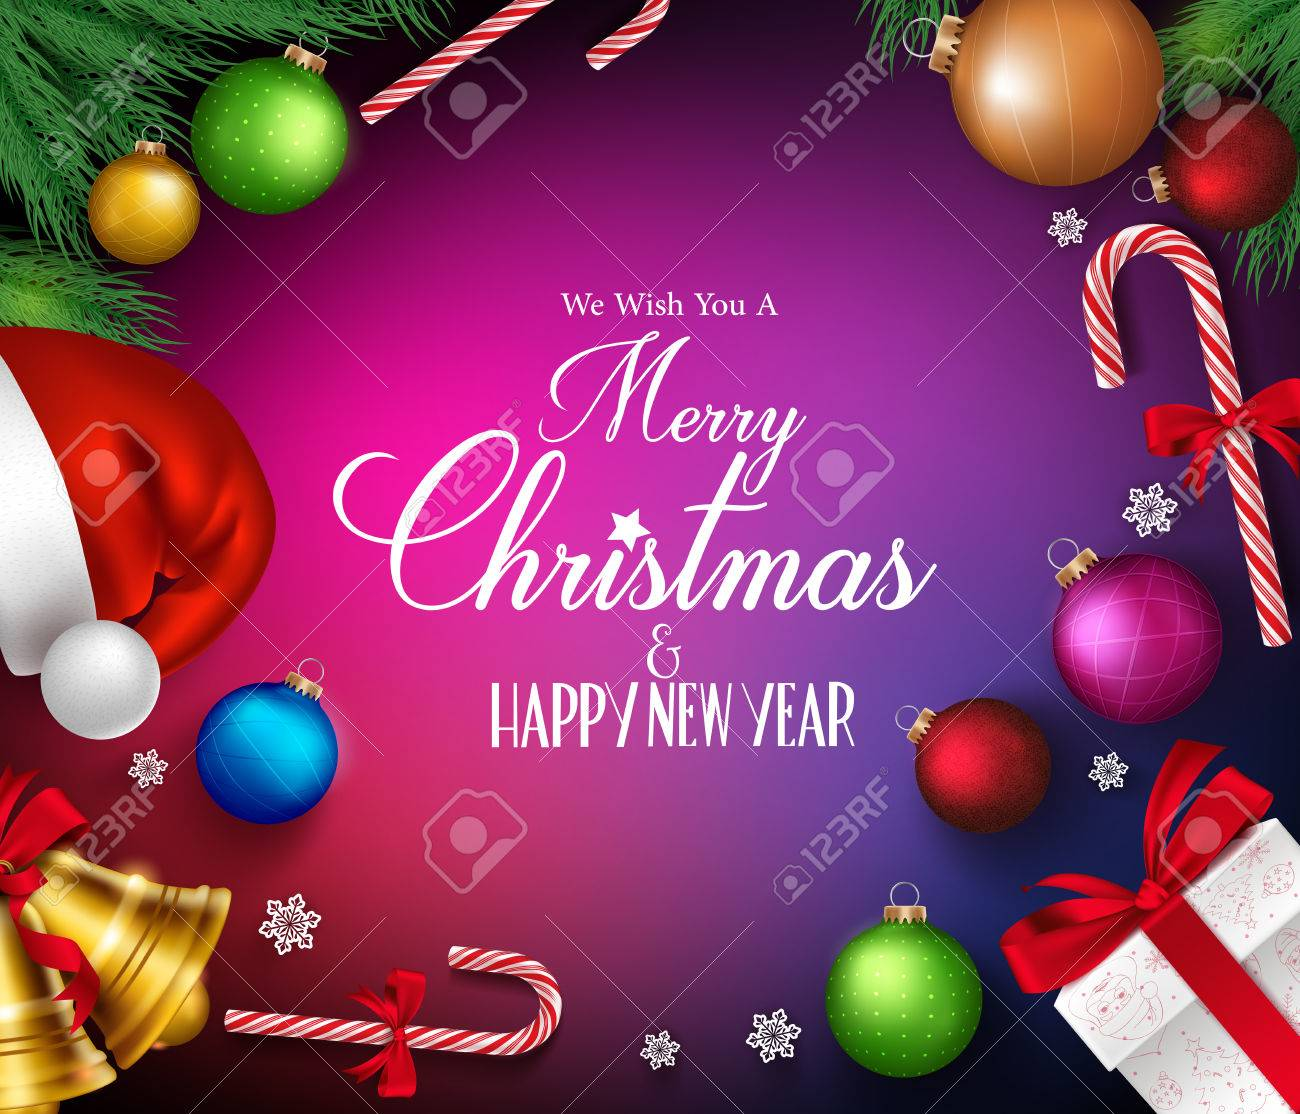 Merry Christmas Greetings In Realistic Decorations And Objects